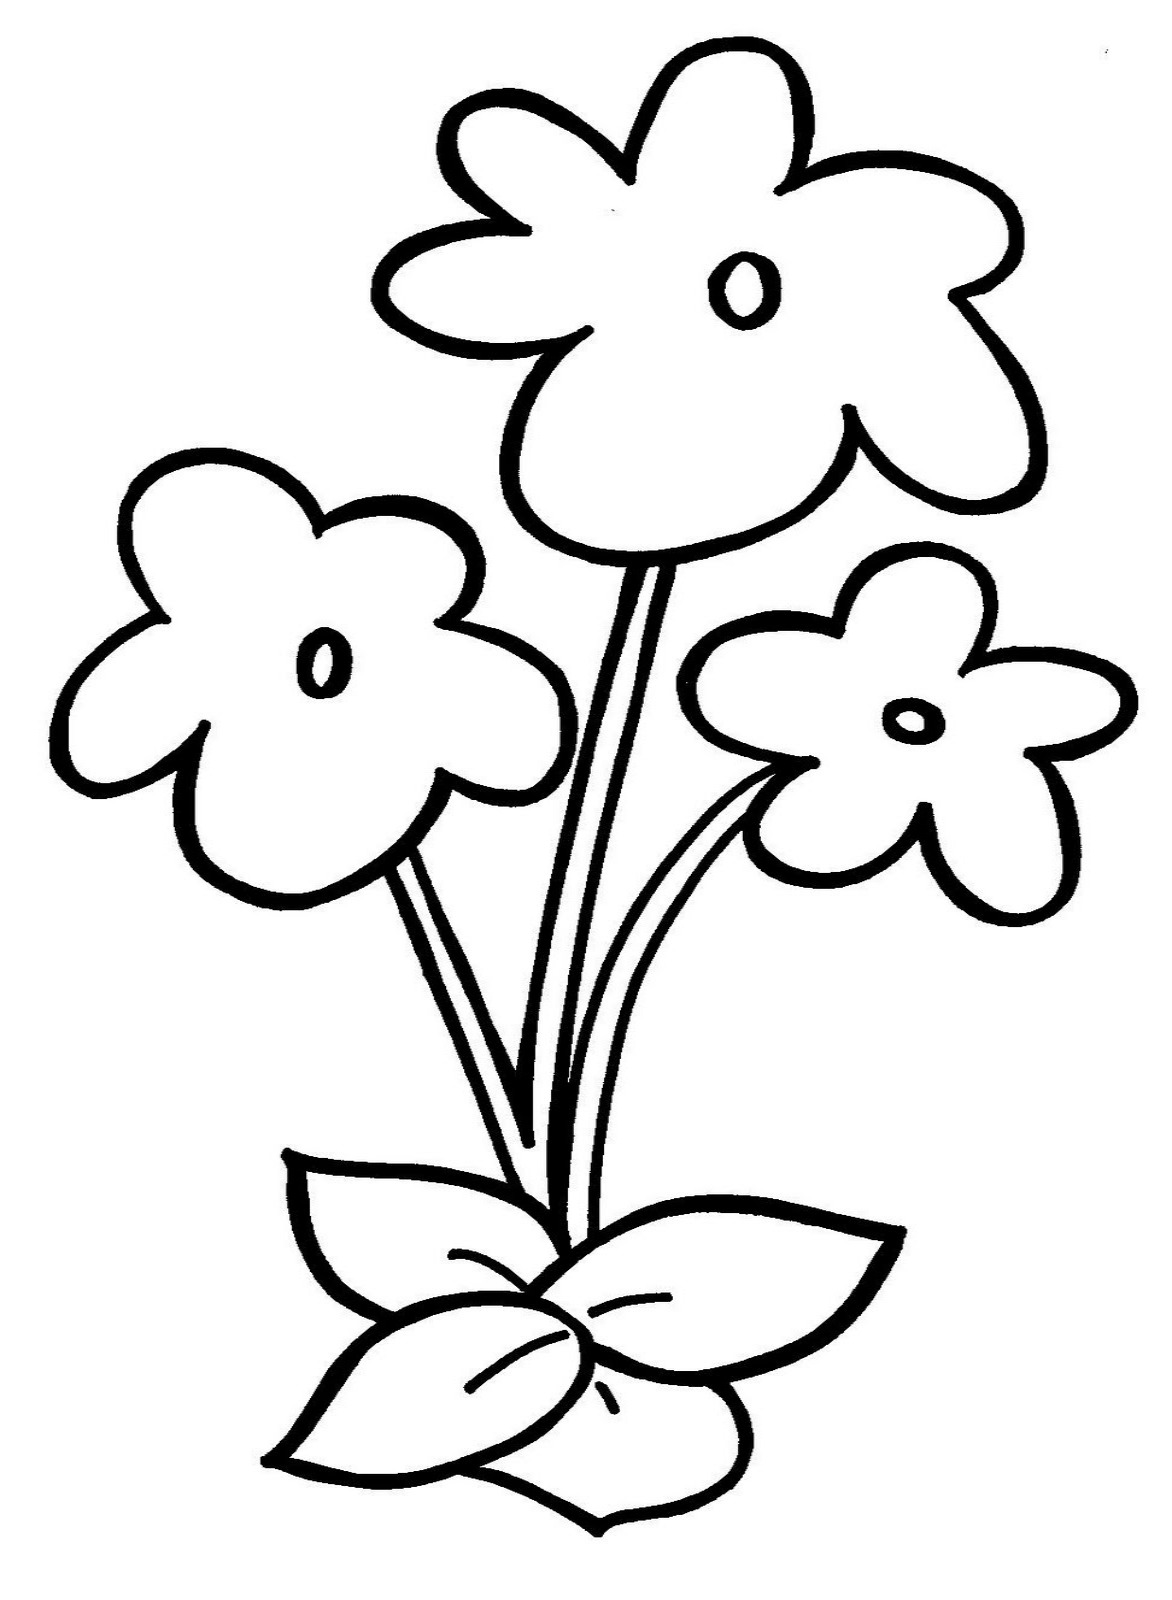 easy coloring pages of flowers simple flower coloring pages clipart best pages coloring easy flowers of